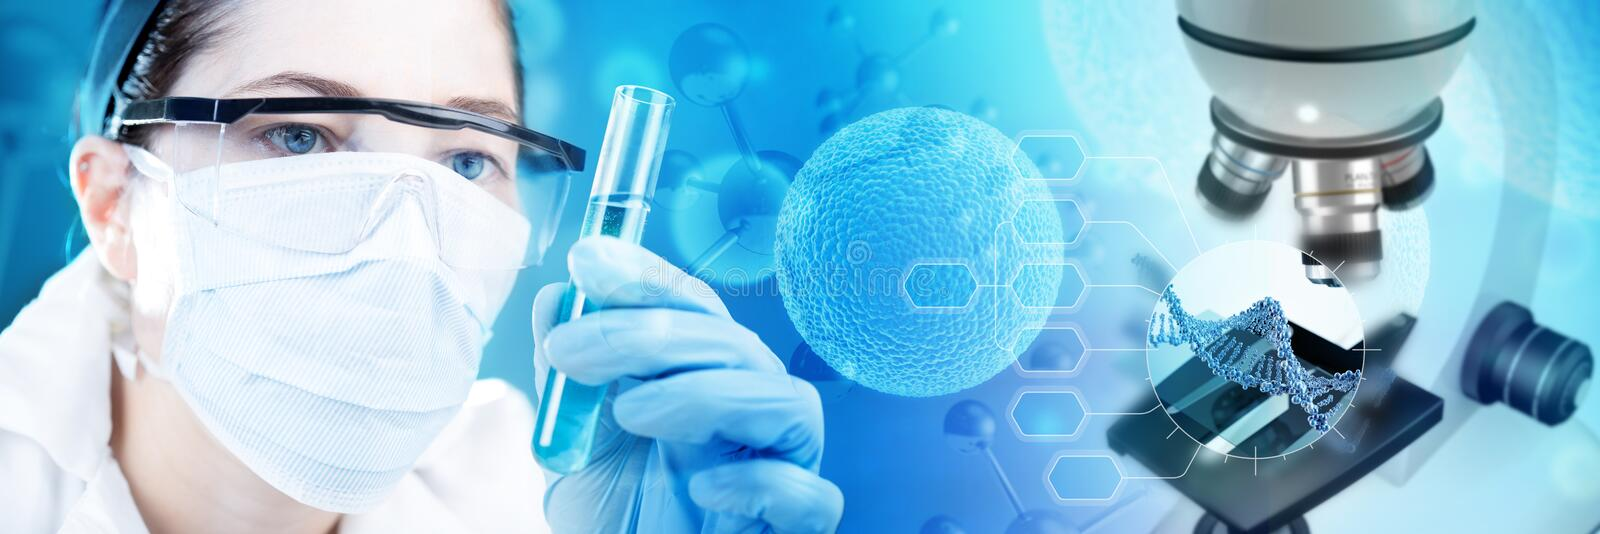 Scientist holding a test-tube stock image